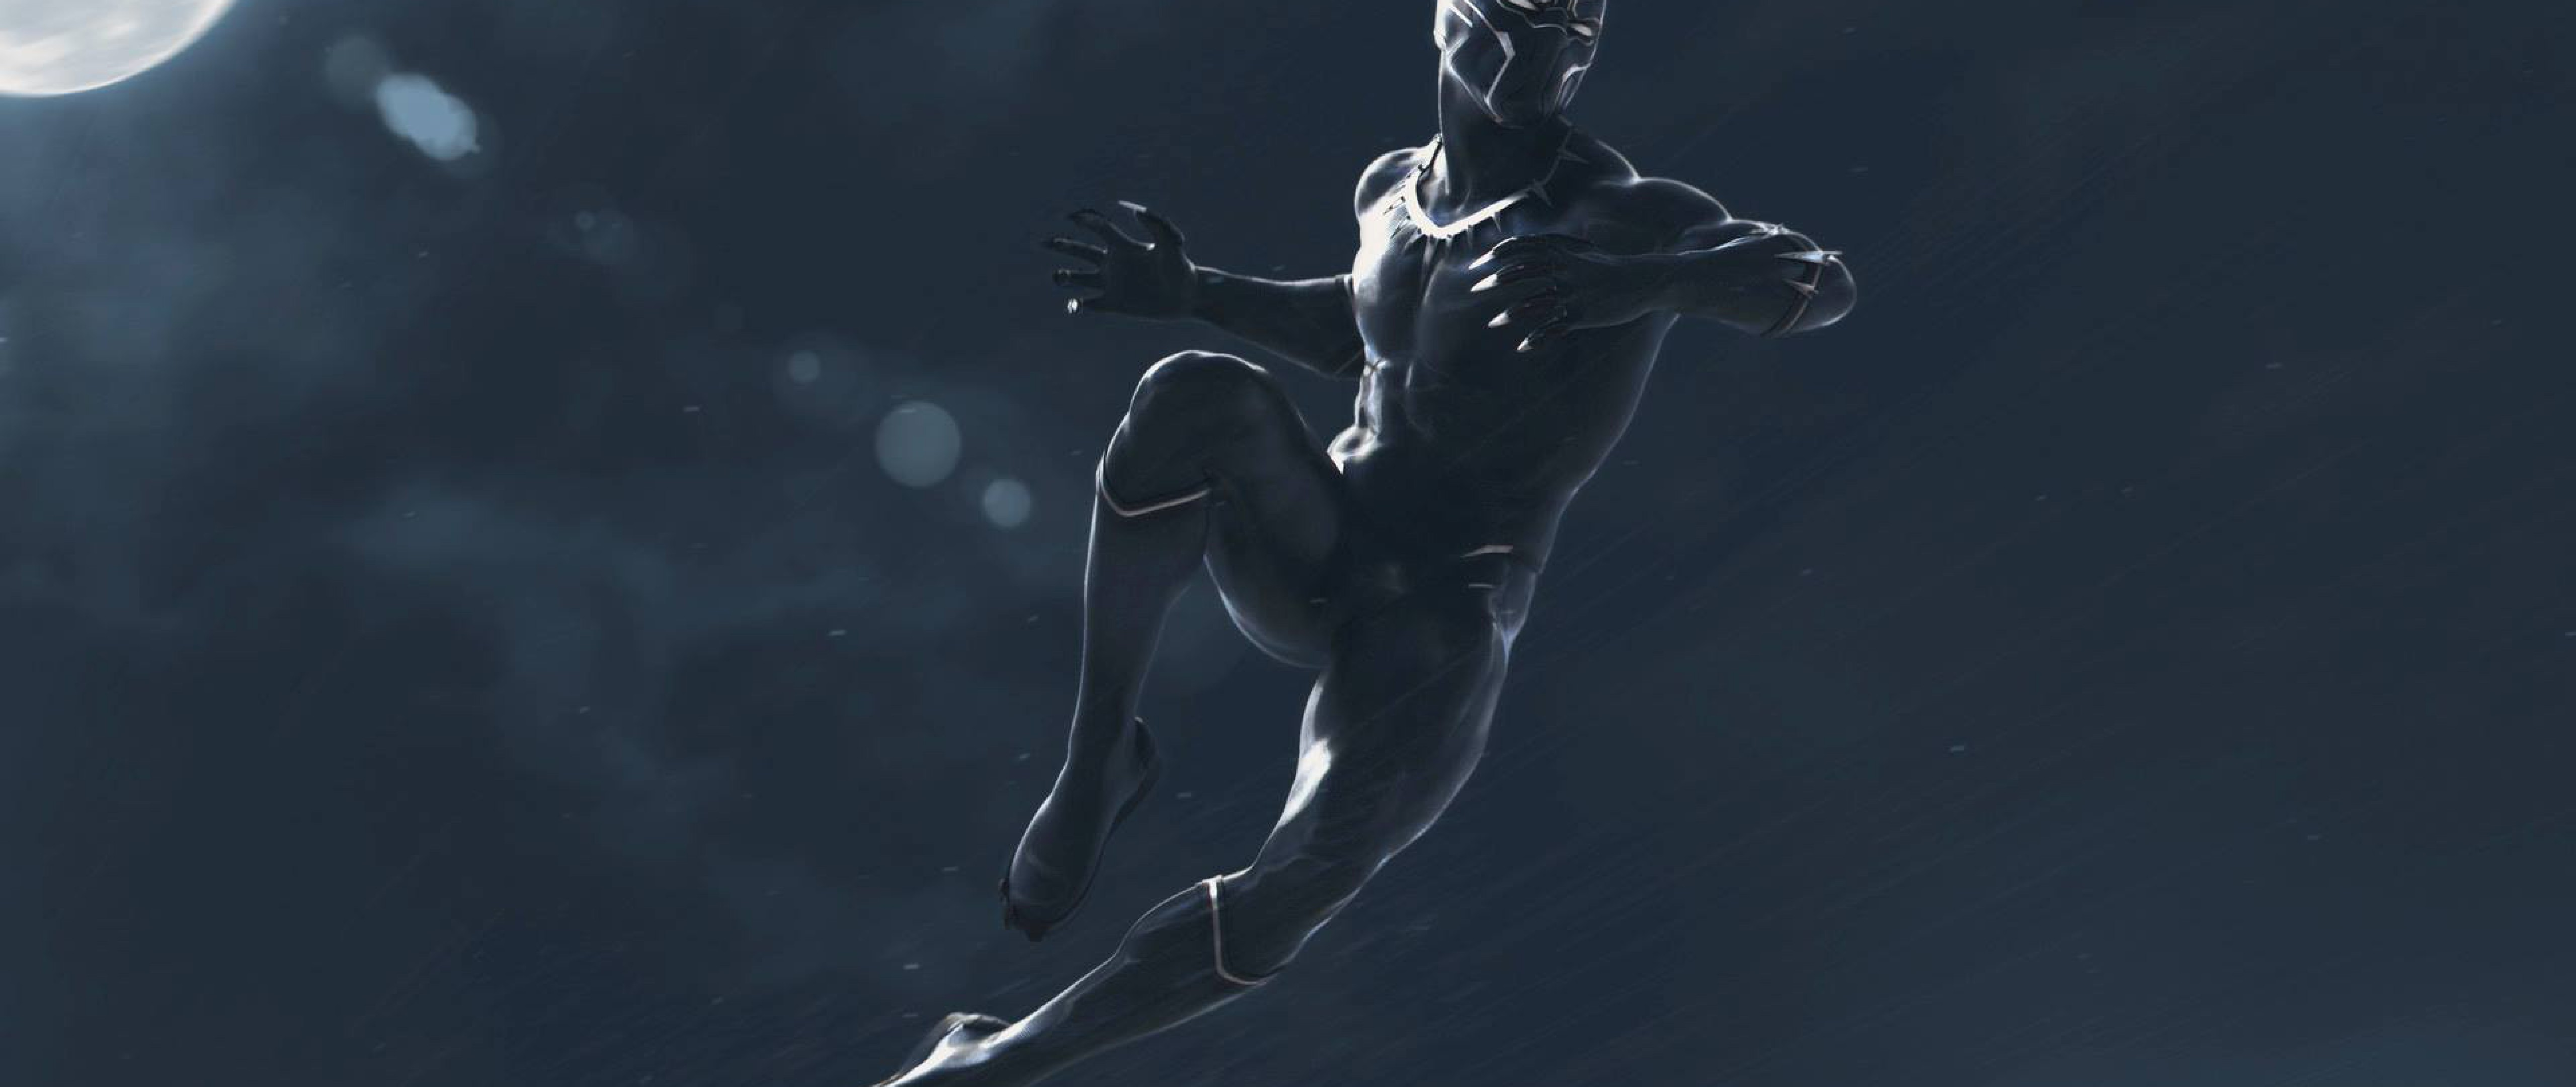 Download Black Panther Digital Art Wallpaper For Desktop And Mobiles 4k Ultra Hd Wide Tv Hd Wallpaper Wallpapers Net